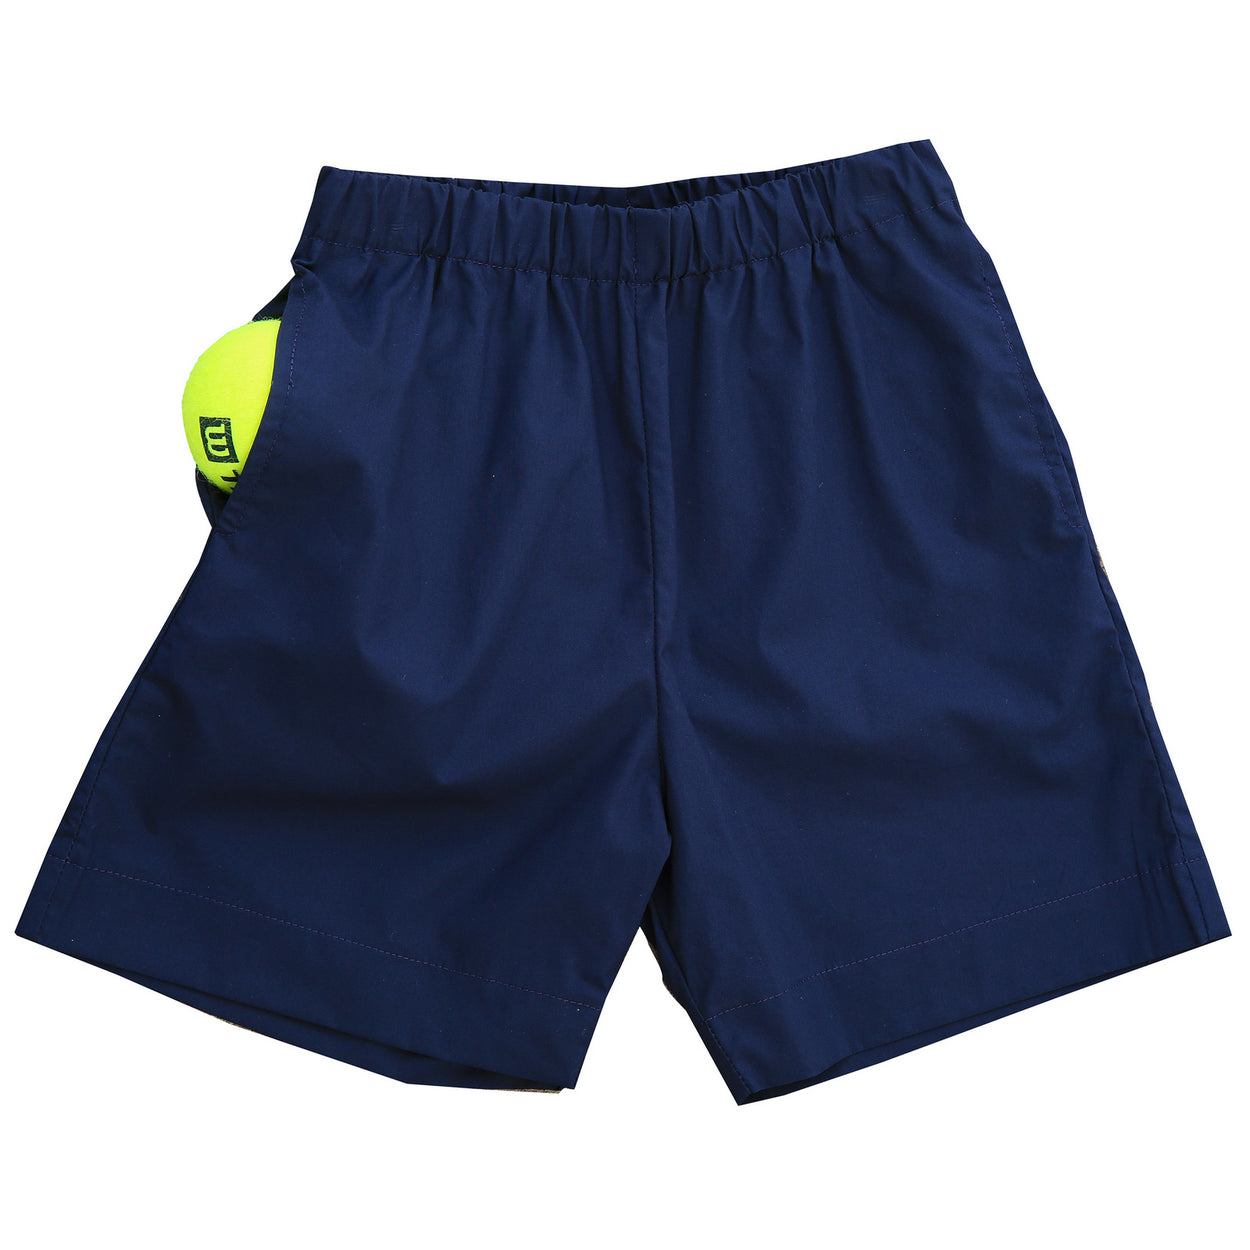 boys' dri fit performance sport shorts navy